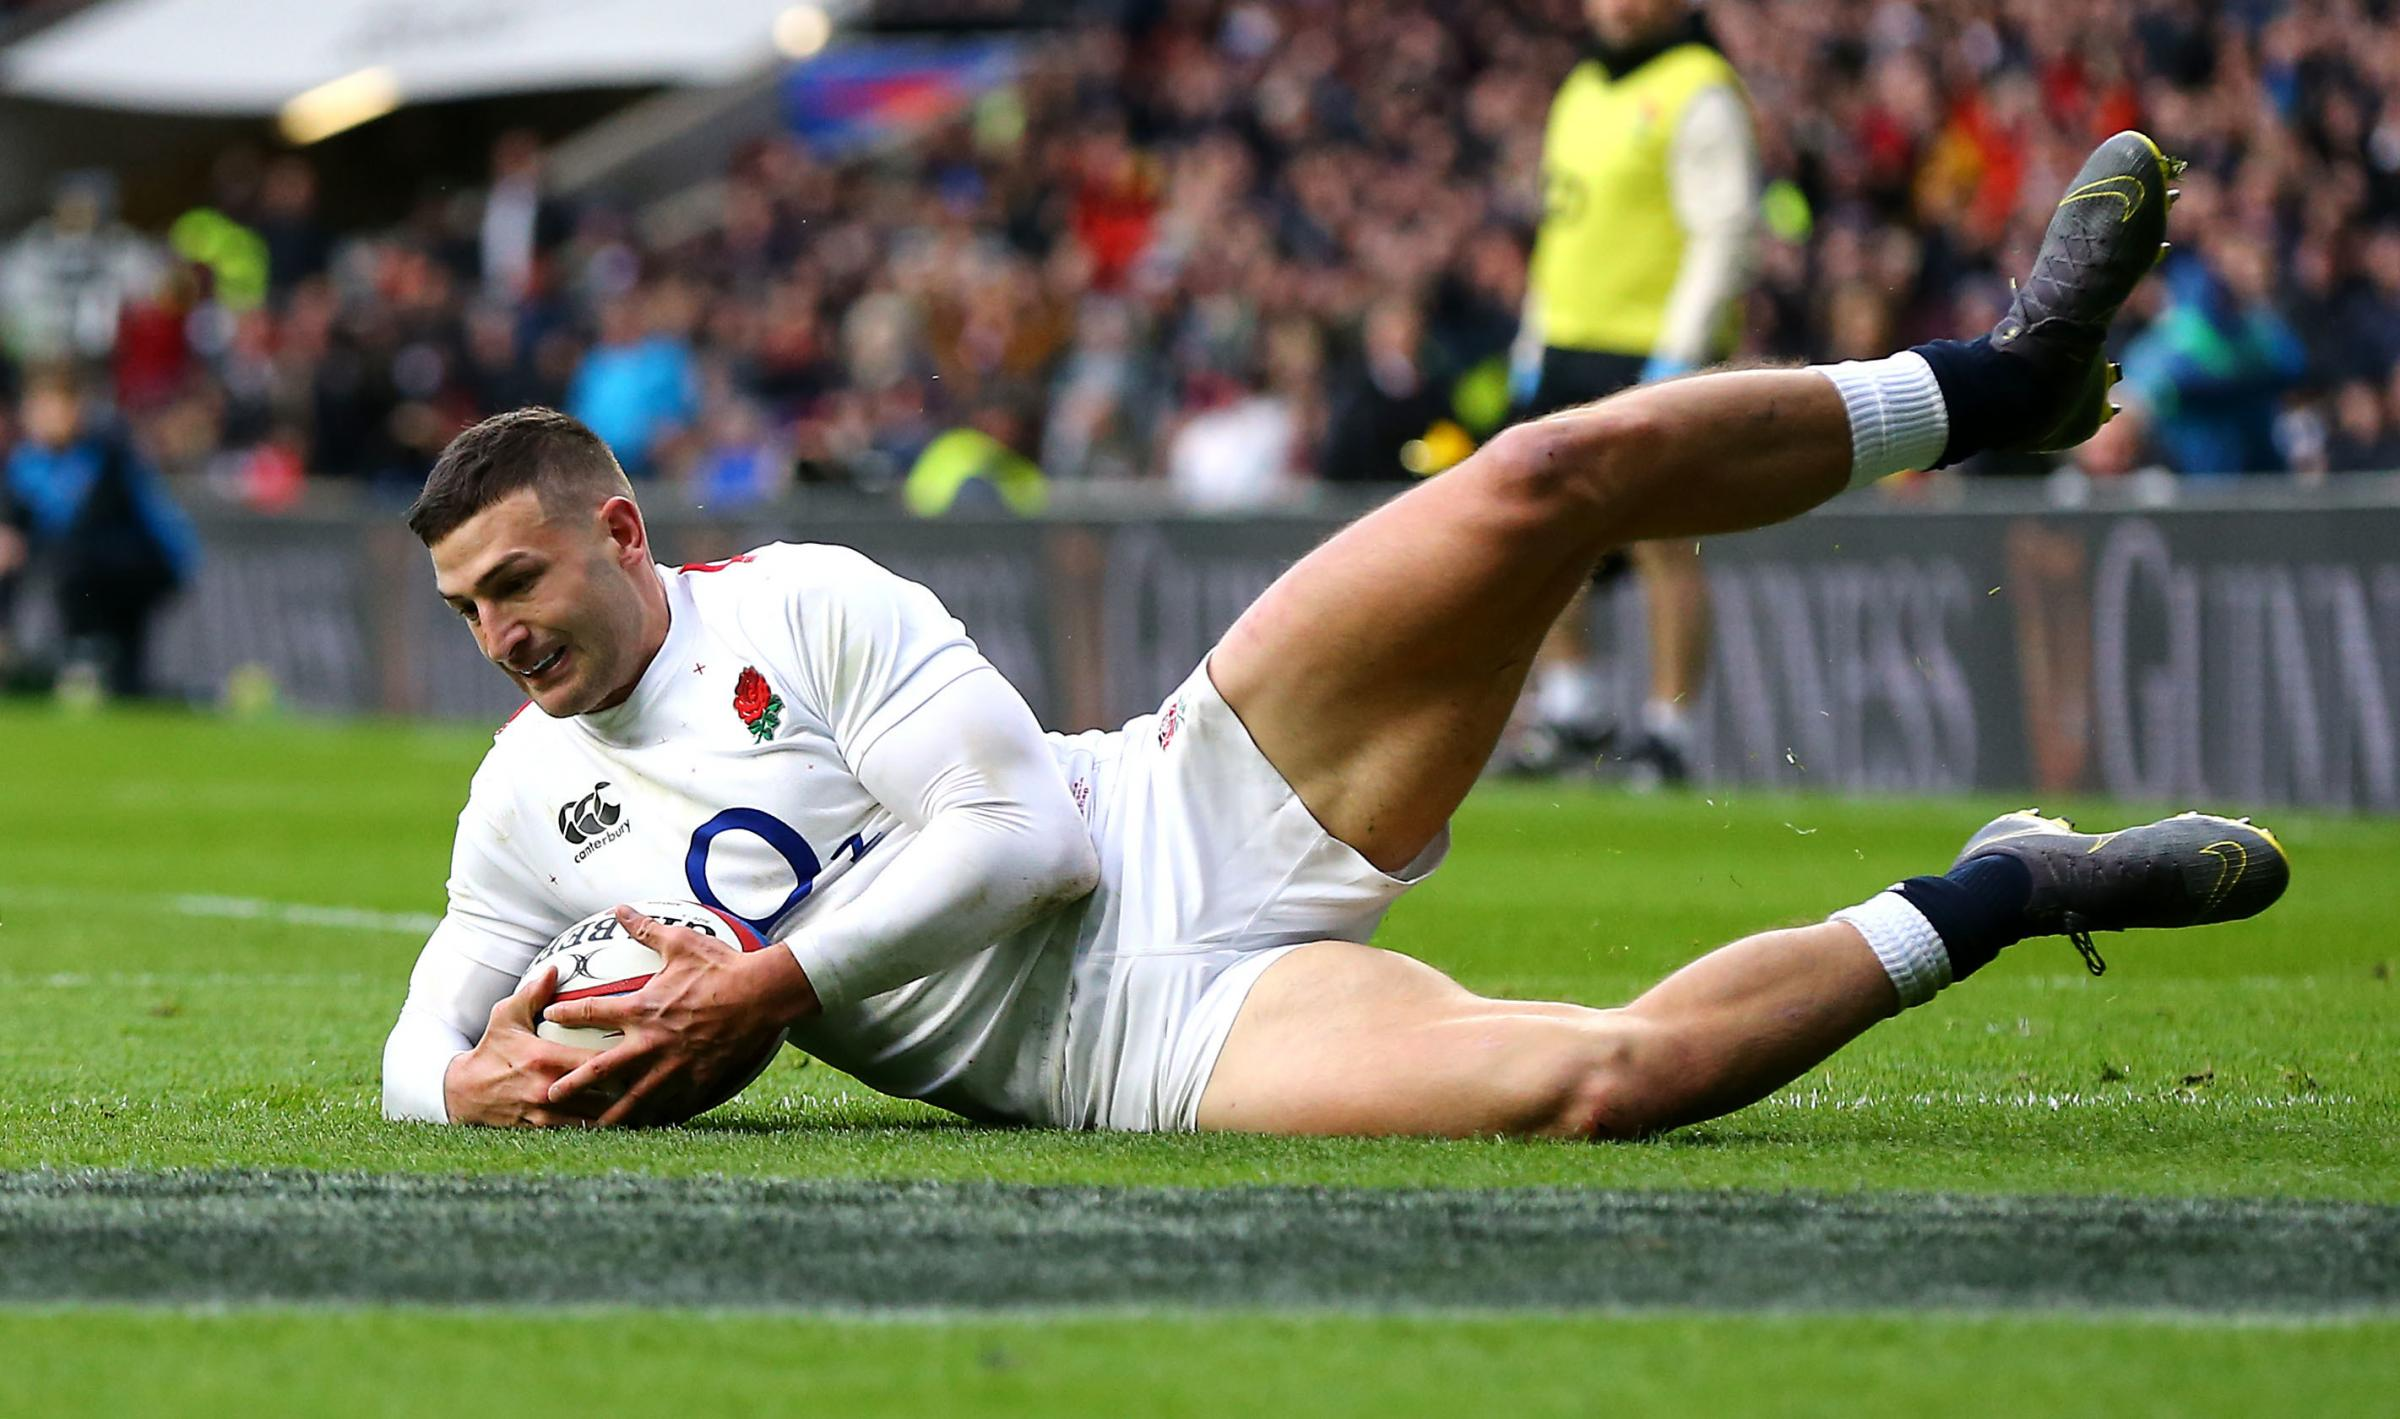 England's Jonny May scores his side's third try of the game during the Guinness Six Nations match at Twickenham Stadium, London..